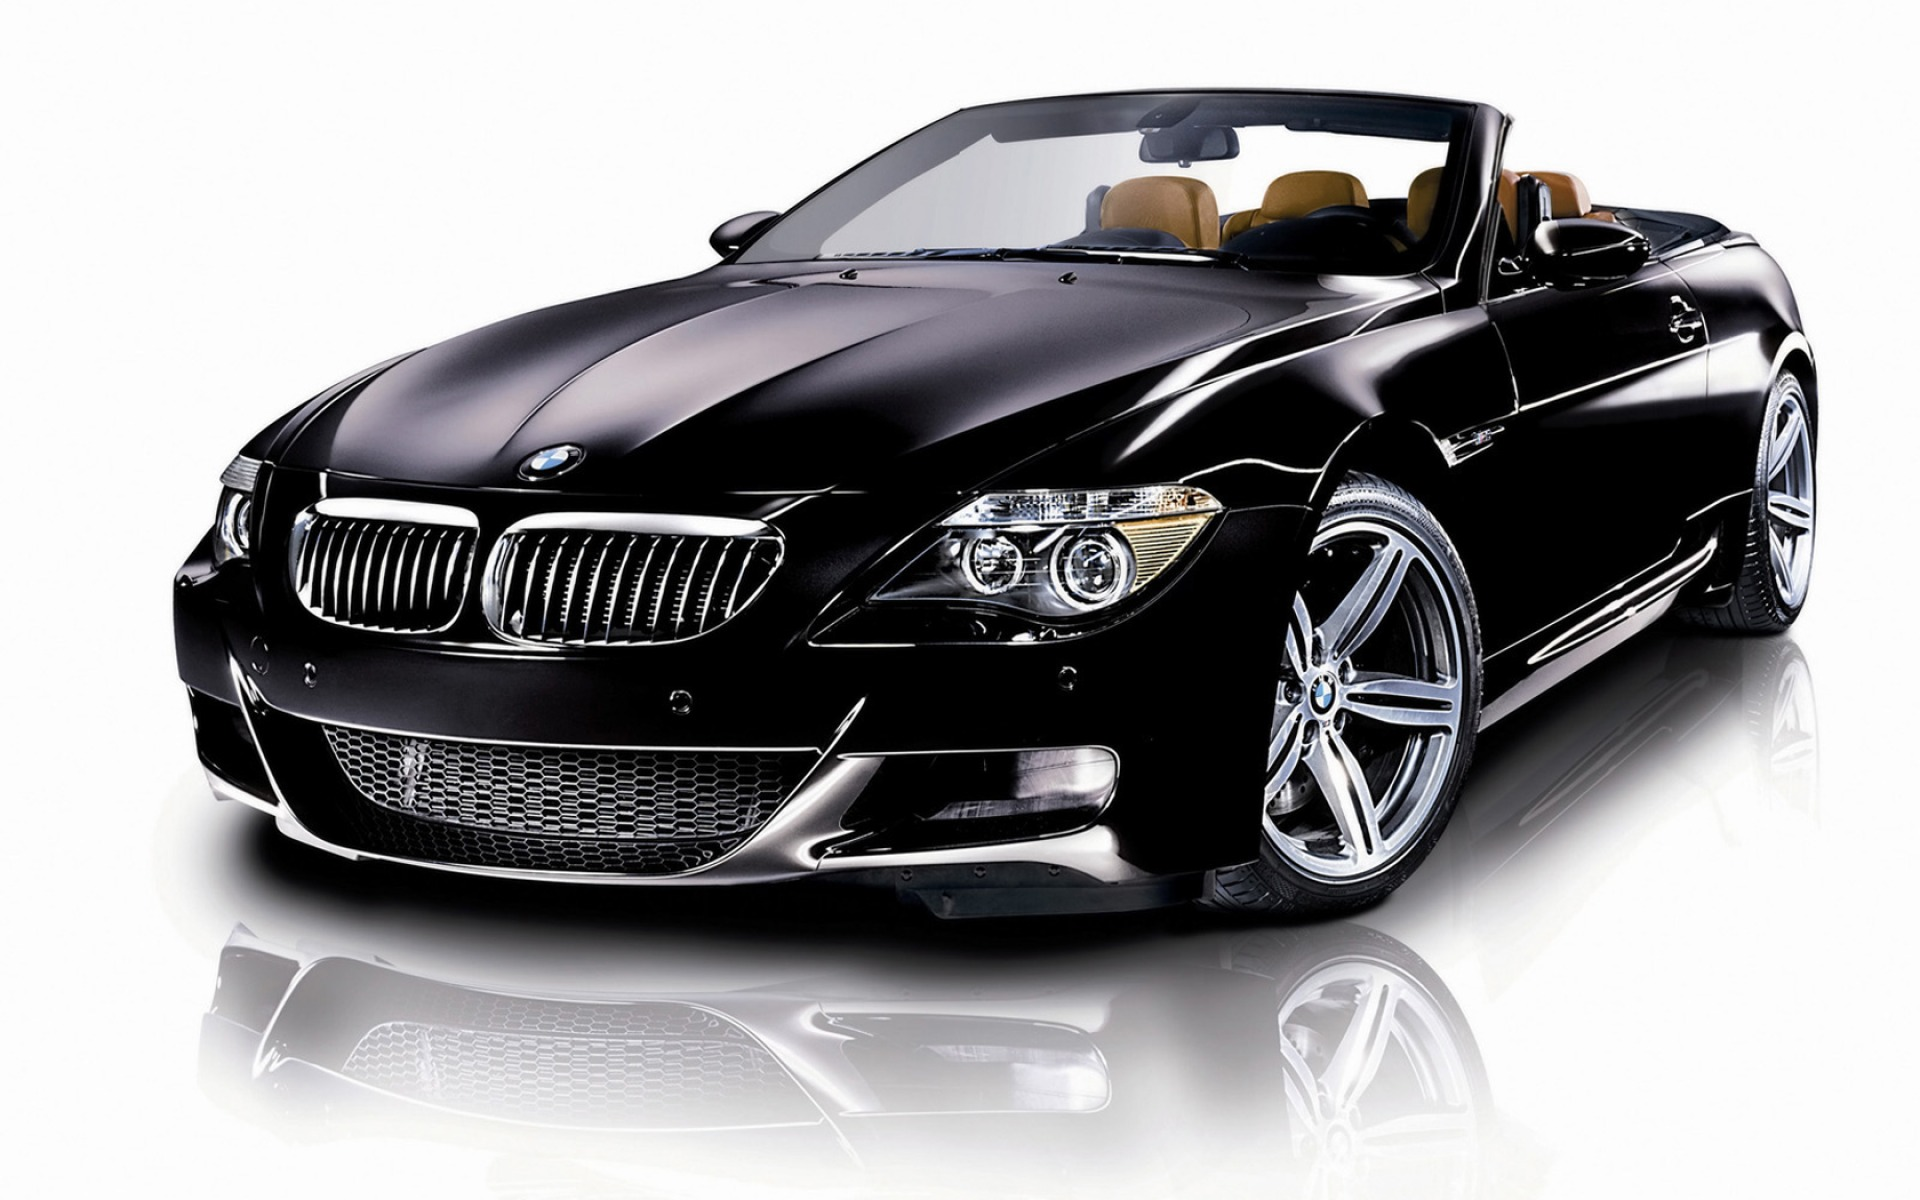 Ultrablogus  Splendid Bmw Car Wallpaper Wallpapers For Free Download About   With Glamorous Bmw M Convertible Wallpaper Bmw Cars With Delightful Scion Frs  Interior Also Chevy Colorado Interior Mods In Addition C Corvette Interior And Honda Crv Interior Colors As Well As Jaguar Xf Black Interior Additionally  Chevy Volt Interior From Allfreedownloadcom With Ultrablogus  Glamorous Bmw Car Wallpaper Wallpapers For Free Download About   With Delightful Bmw M Convertible Wallpaper Bmw Cars And Splendid Scion Frs  Interior Also Chevy Colorado Interior Mods In Addition C Corvette Interior From Allfreedownloadcom